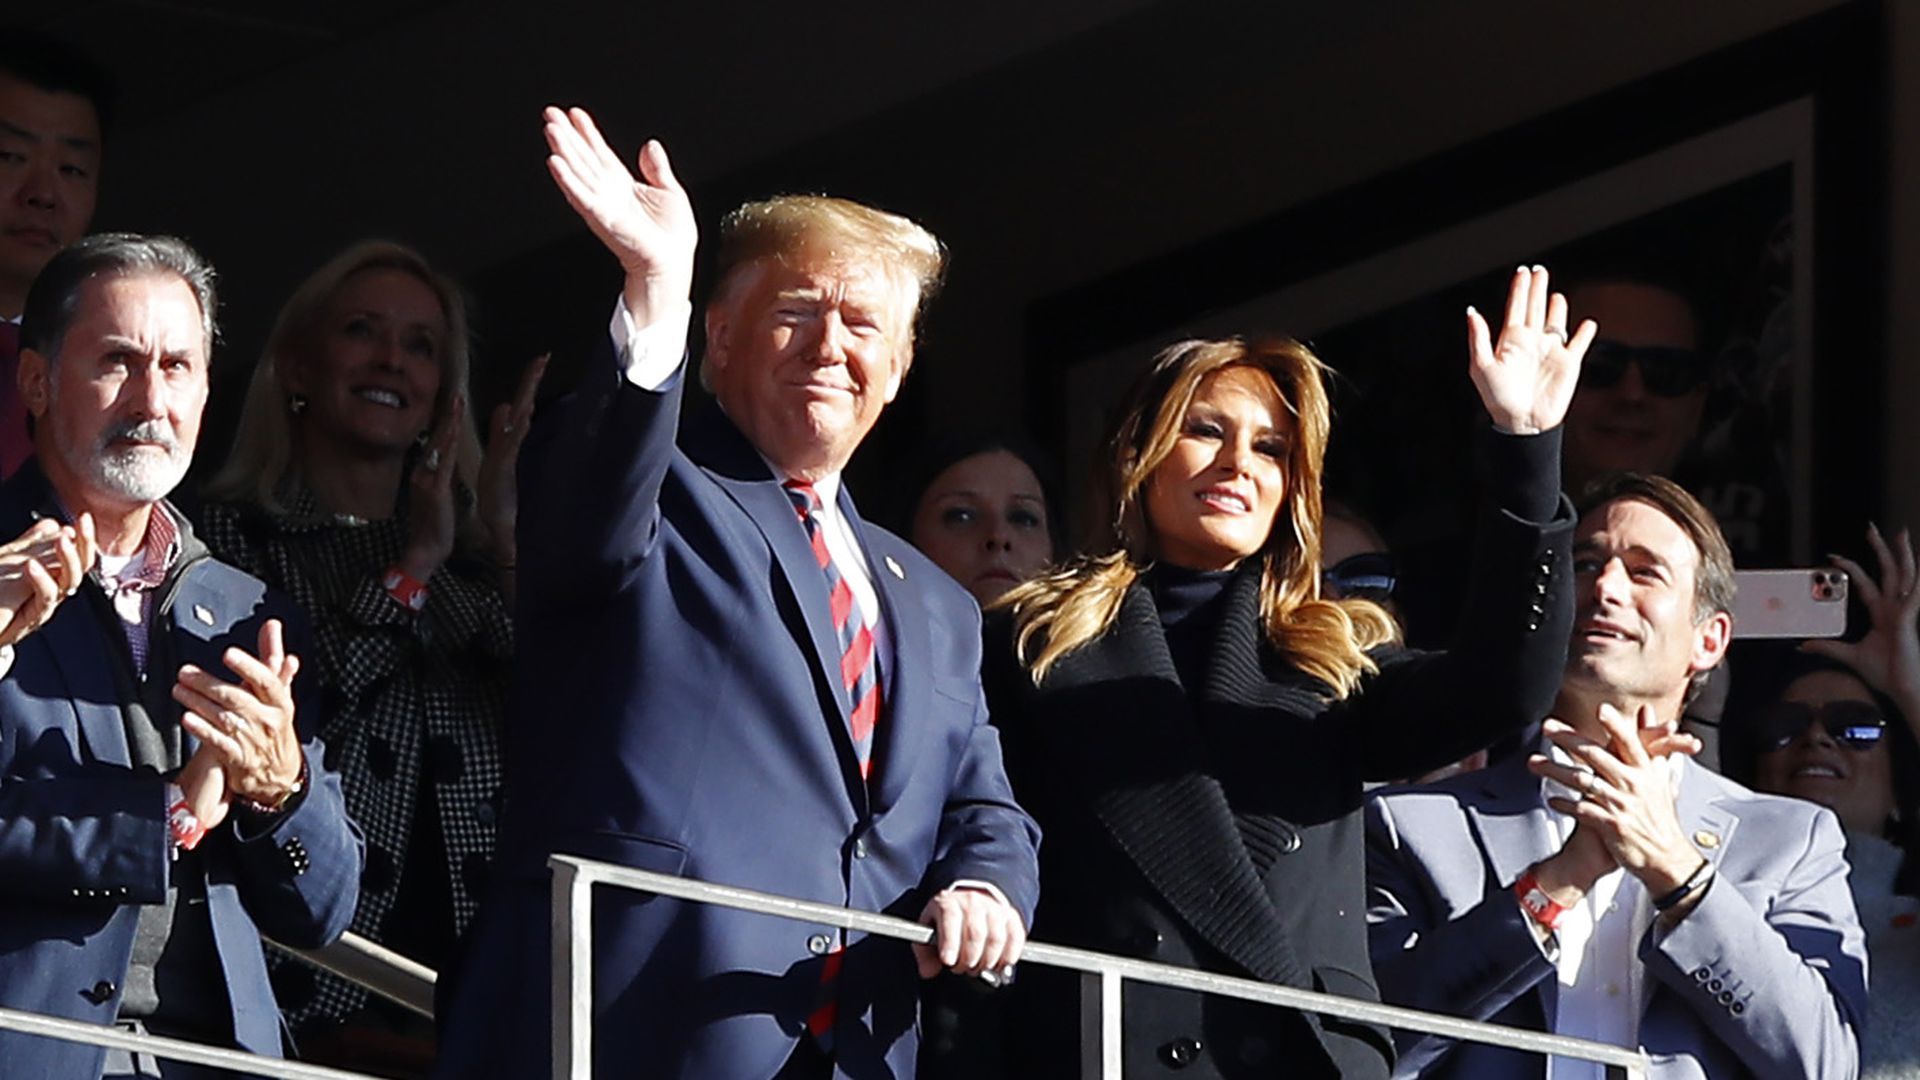 President Donald Trump and first lady Melania Trump attend the game between the LSU Tigers and the Alabama Crimson Tide at Bryant-Denny Stadium on November 09, 2019 in Tuscaloosa, Alabama